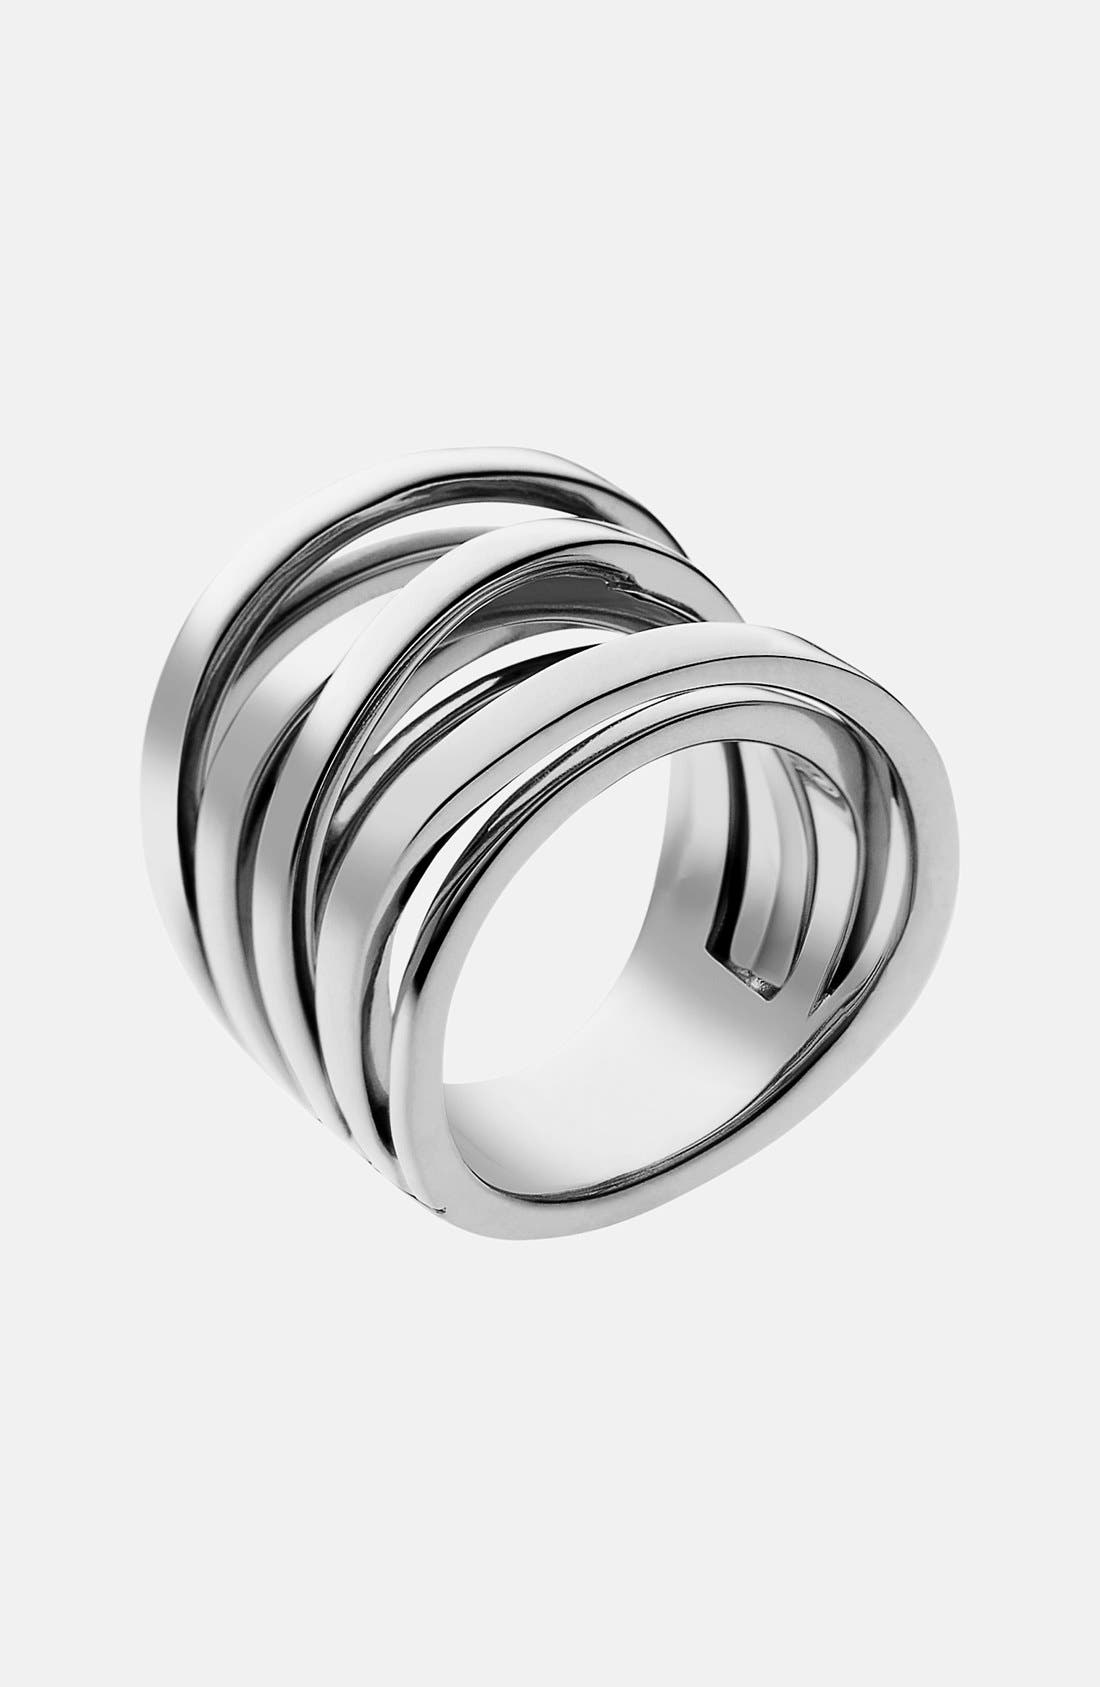 Main Image - Michael Kors 'Brilliance' Large Intertwined Ring